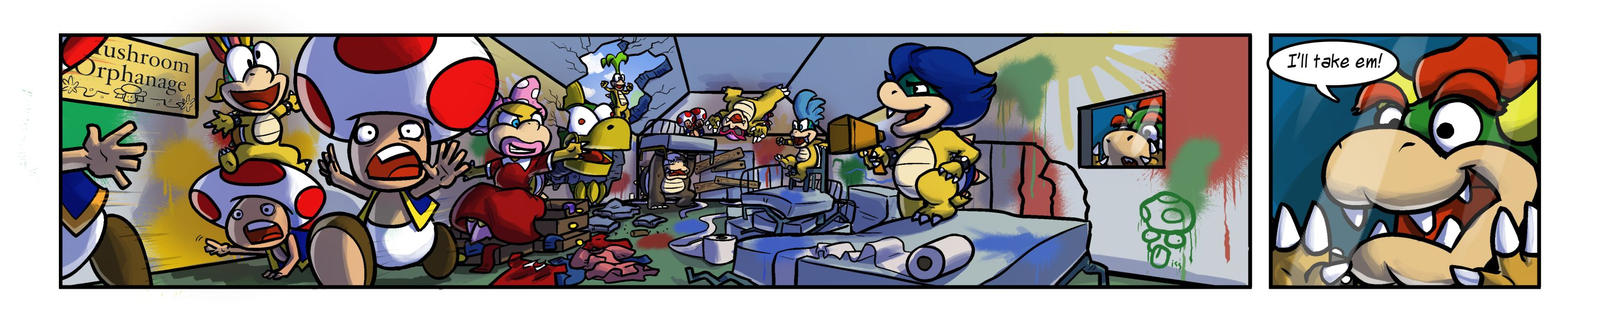 CMSN - Koopaling Orphanage by tran4of3